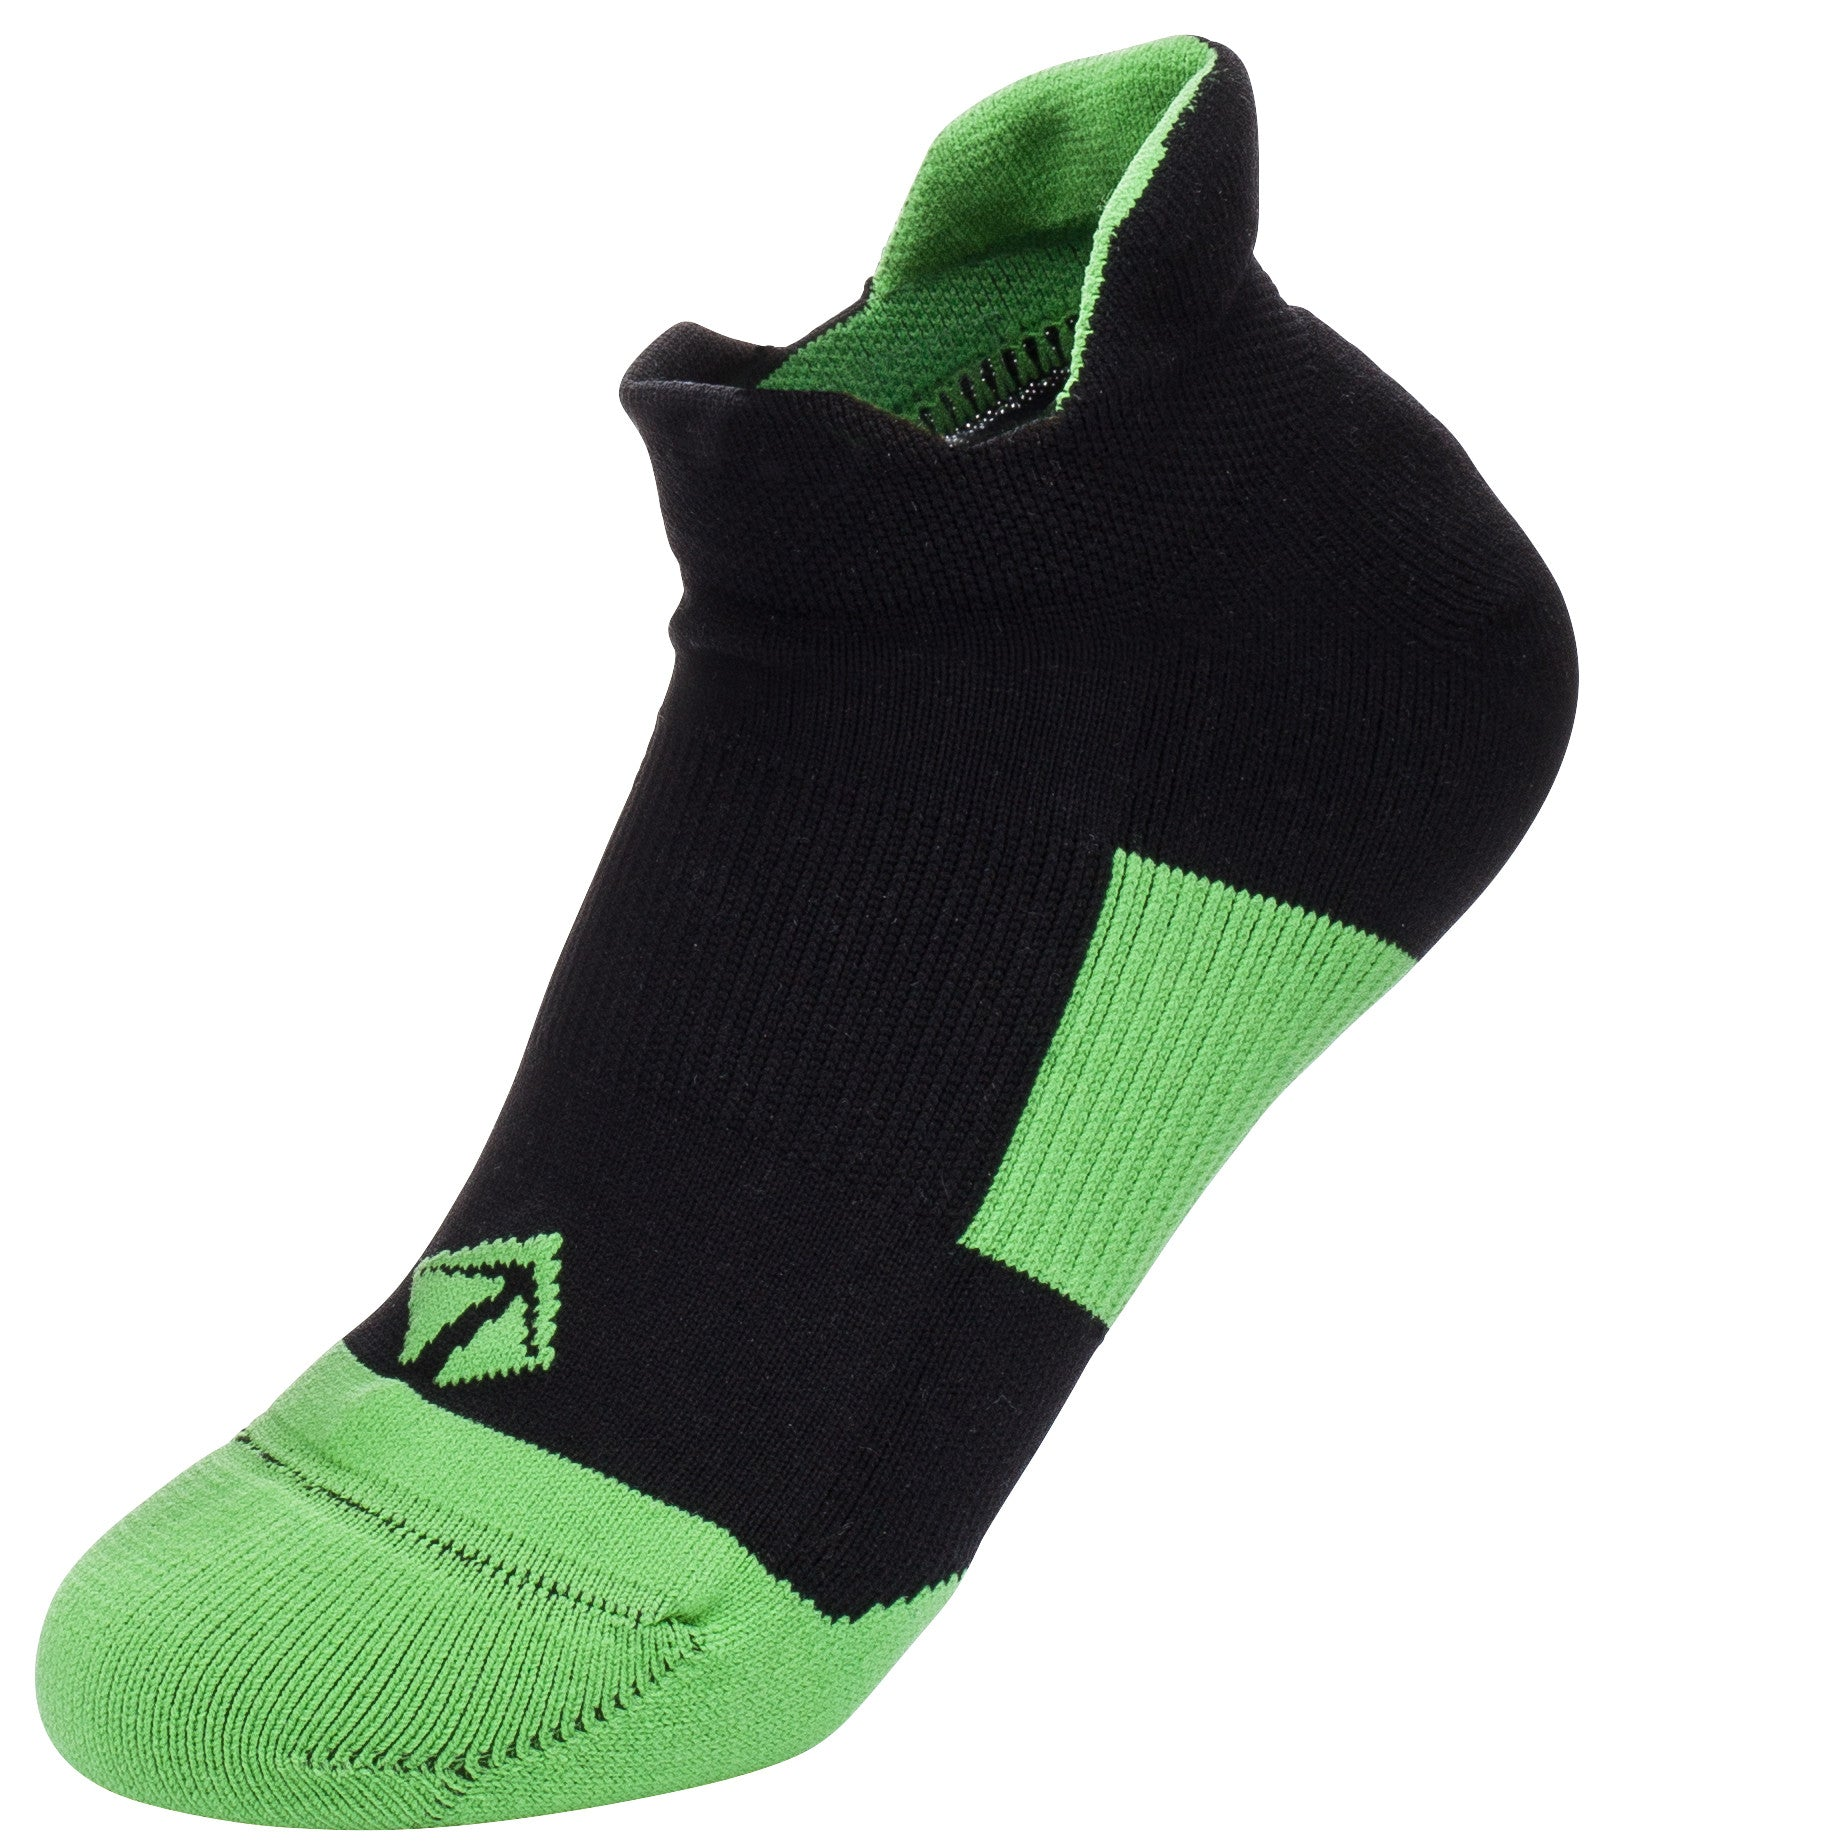 Tech-Lite Running Sock - Black & Green